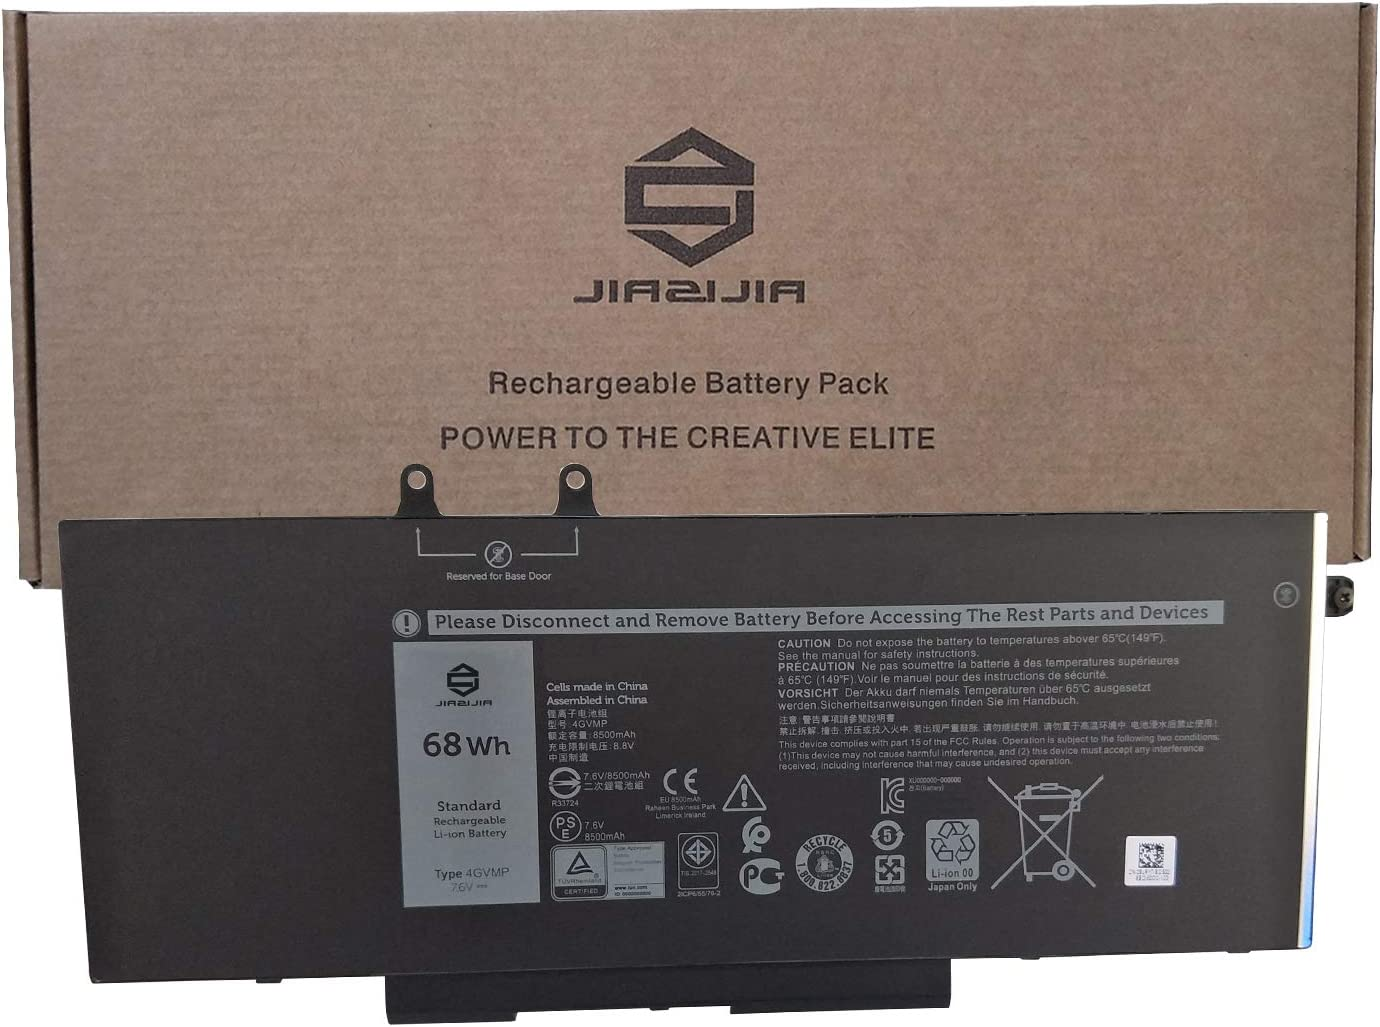 JIAZIJIA 4GVMP Laptop Battery Replacement for Dell Latitude 5400 5410 5500 5510 Precision 3540 3550 Series Notebook 1V1XF R8D7N 9JRYT 09JRYT Black 7.6V 68Wh 8500mAh 4-Cell